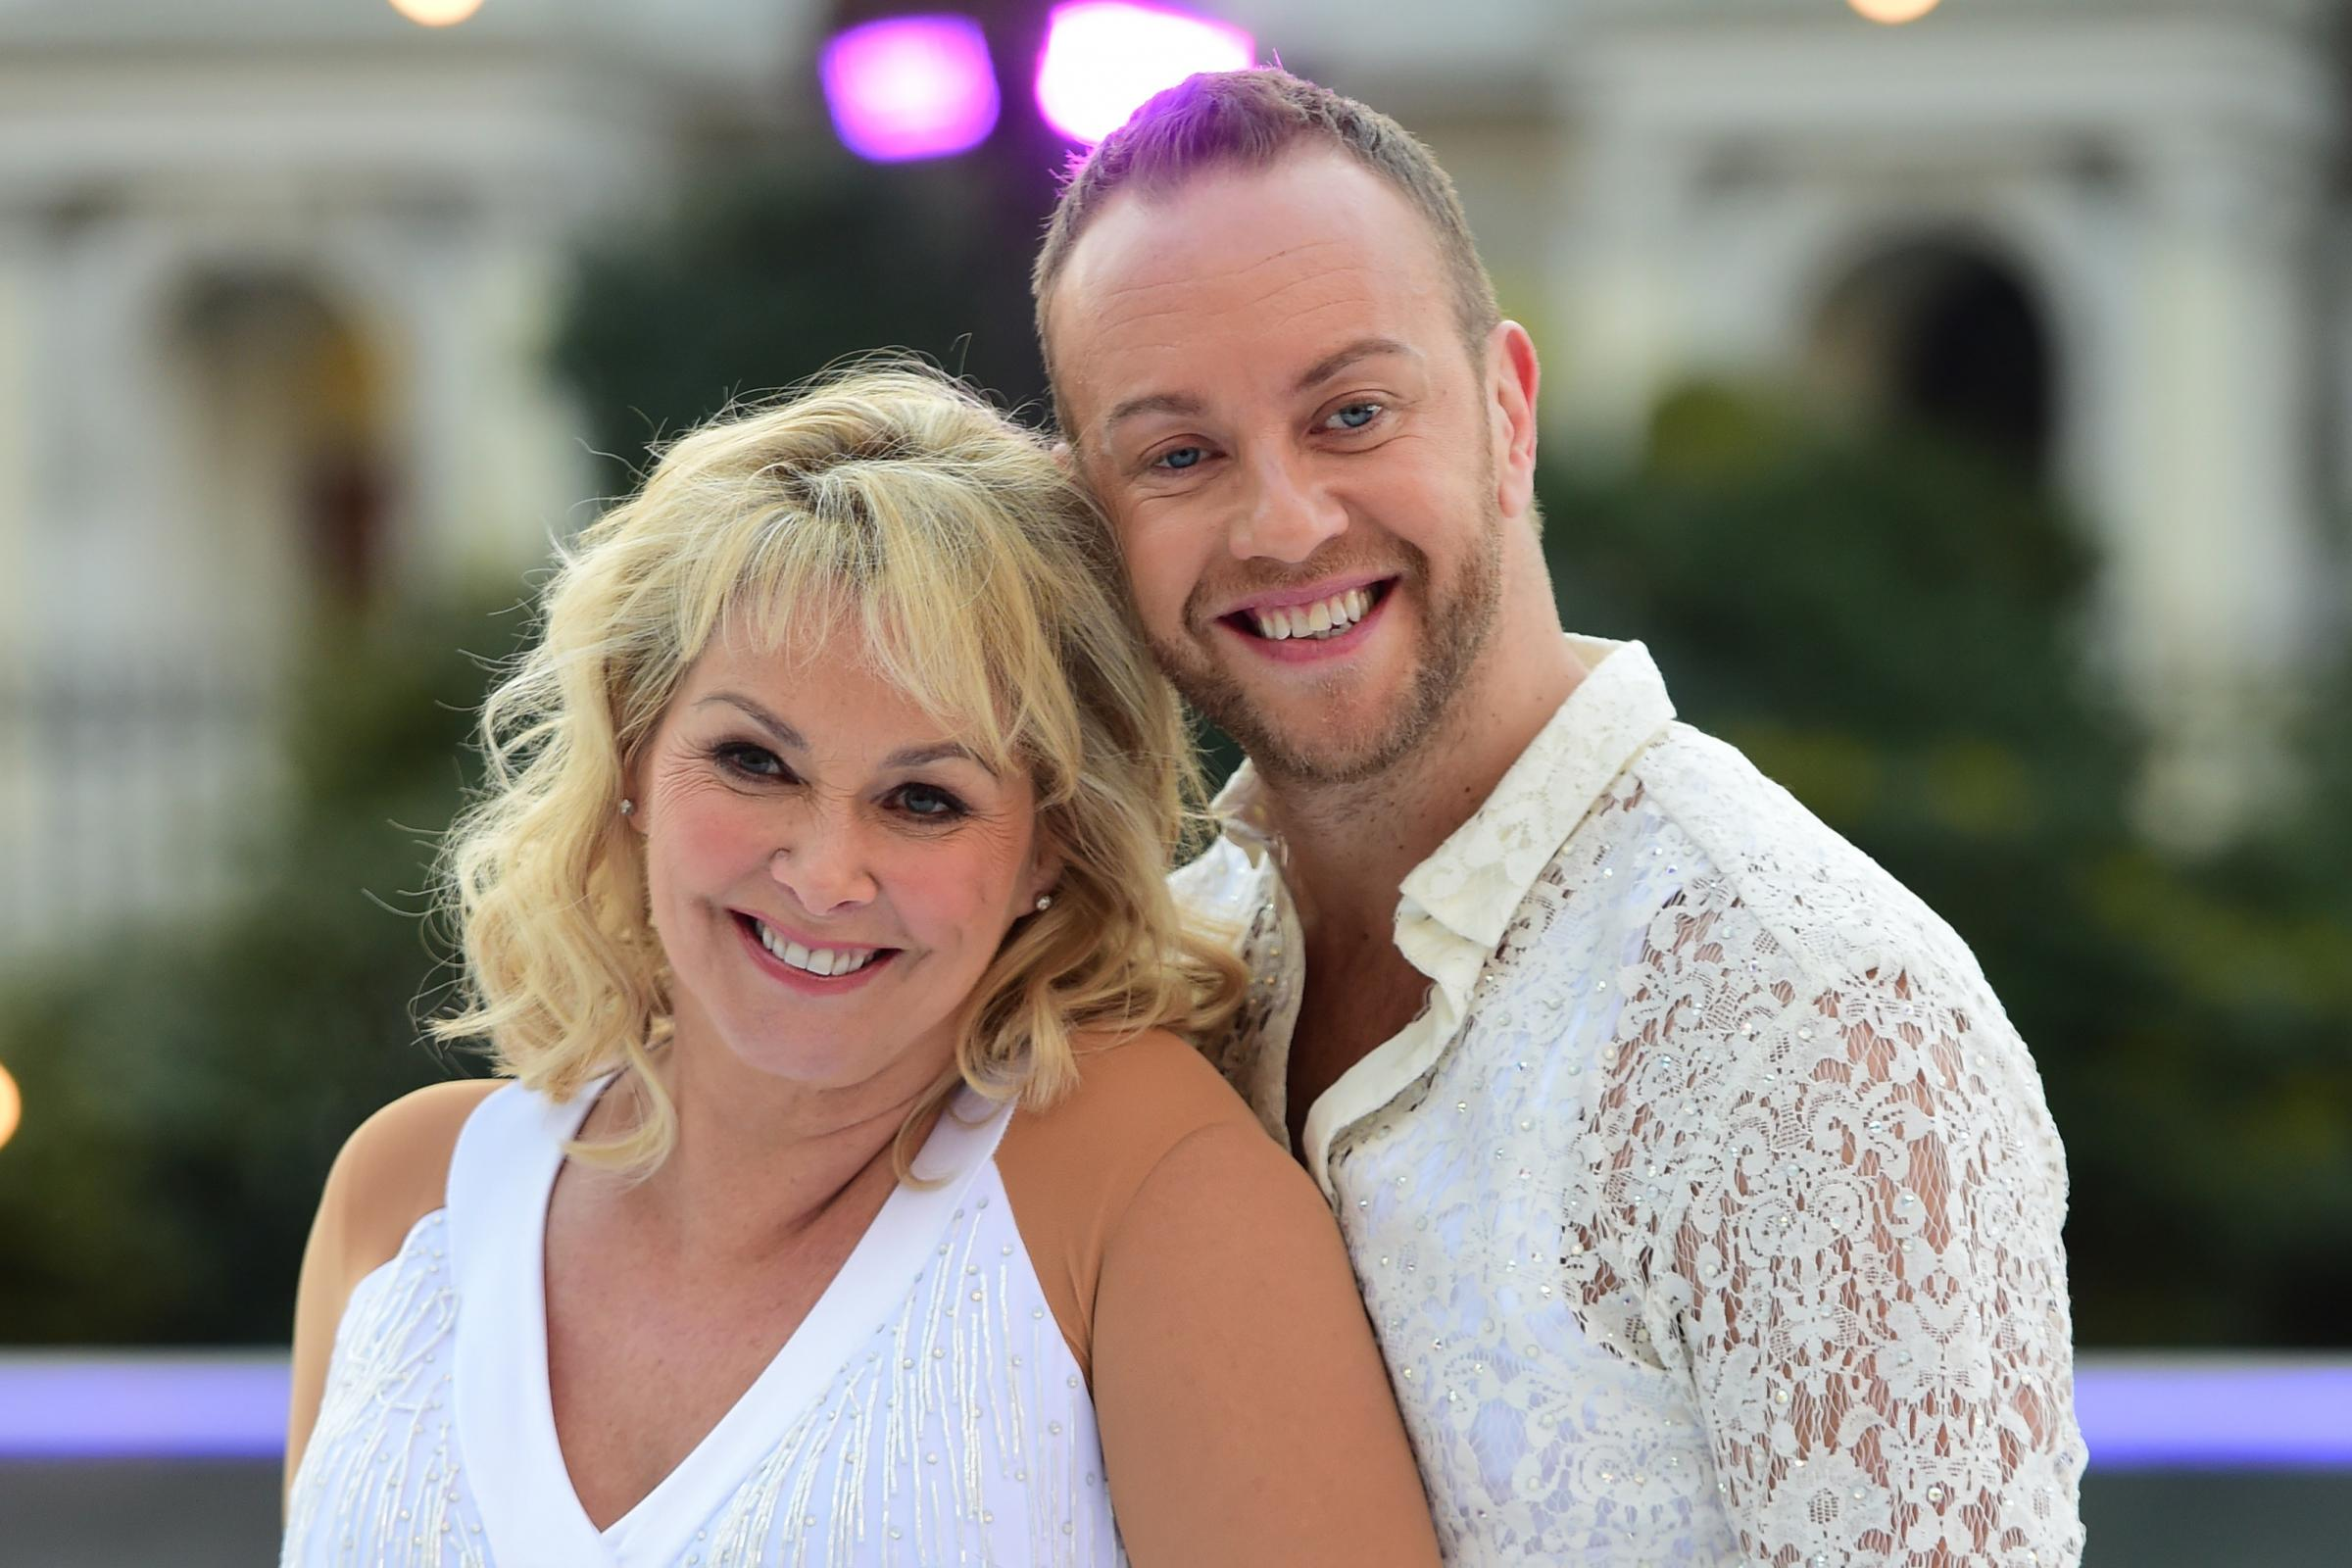 Cheryl Baker and Dan Whiston during the press launch for the upcoming series of Dancing On Ice (David Mirzoeff/PA)